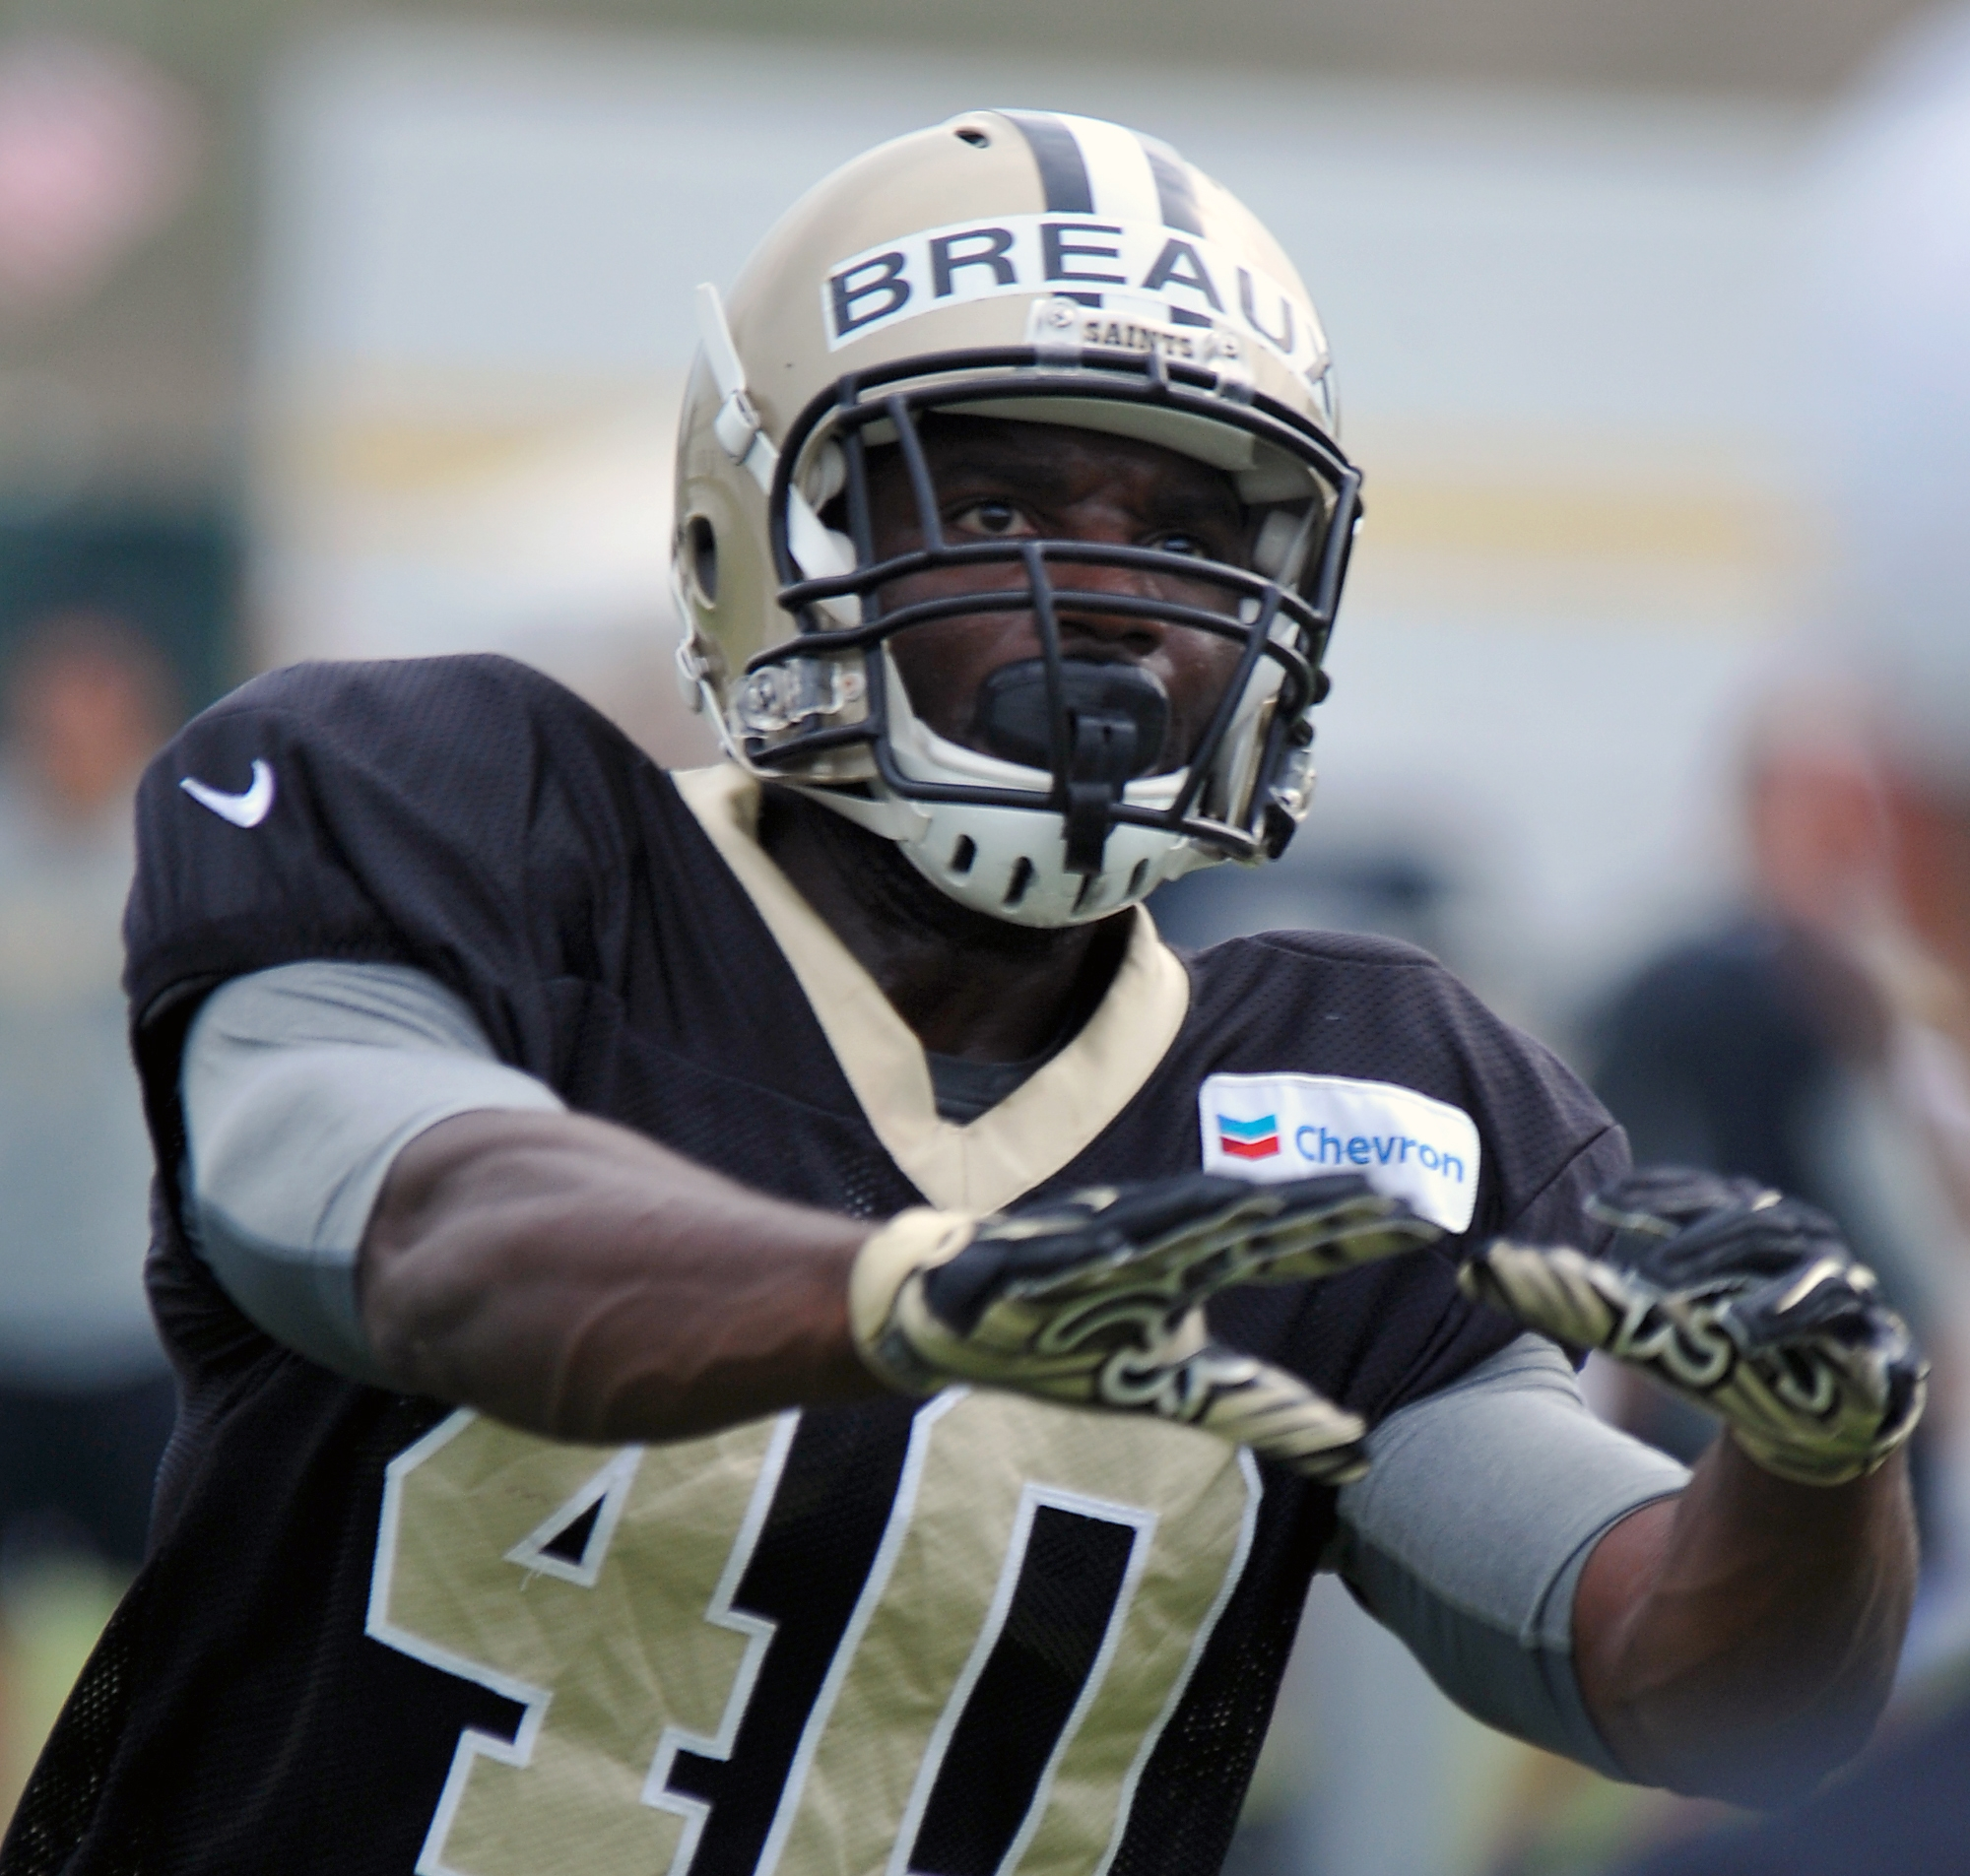 FILE - In this Aug. 6, 2015, file photo, New Orleans Saints defensive back Delvin Breaux (40) reaches for the ball during the team's NFL football training camp in White Sulphur Springs, W. Va. Nearly nine years after breaking his neck in a high school foo